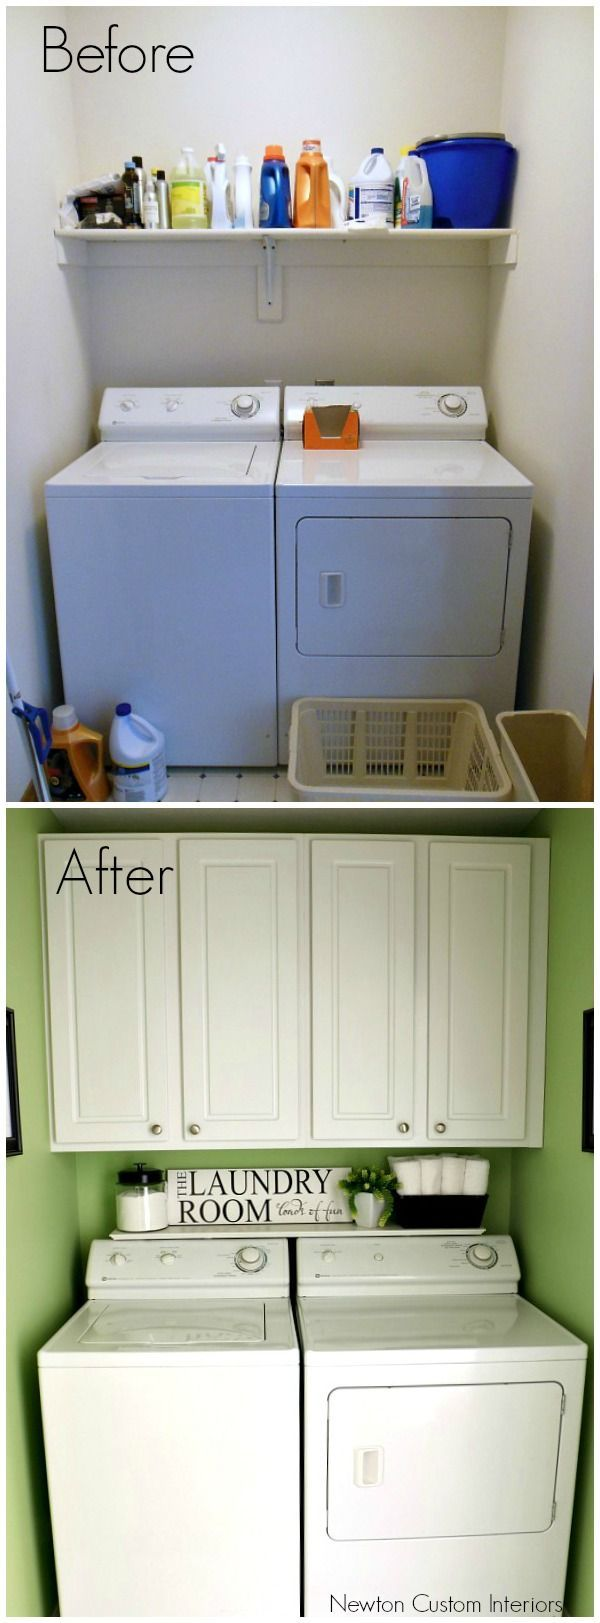 Laundry Room Reveal | Tiny laundry rooms, Small laundry rooms and ...